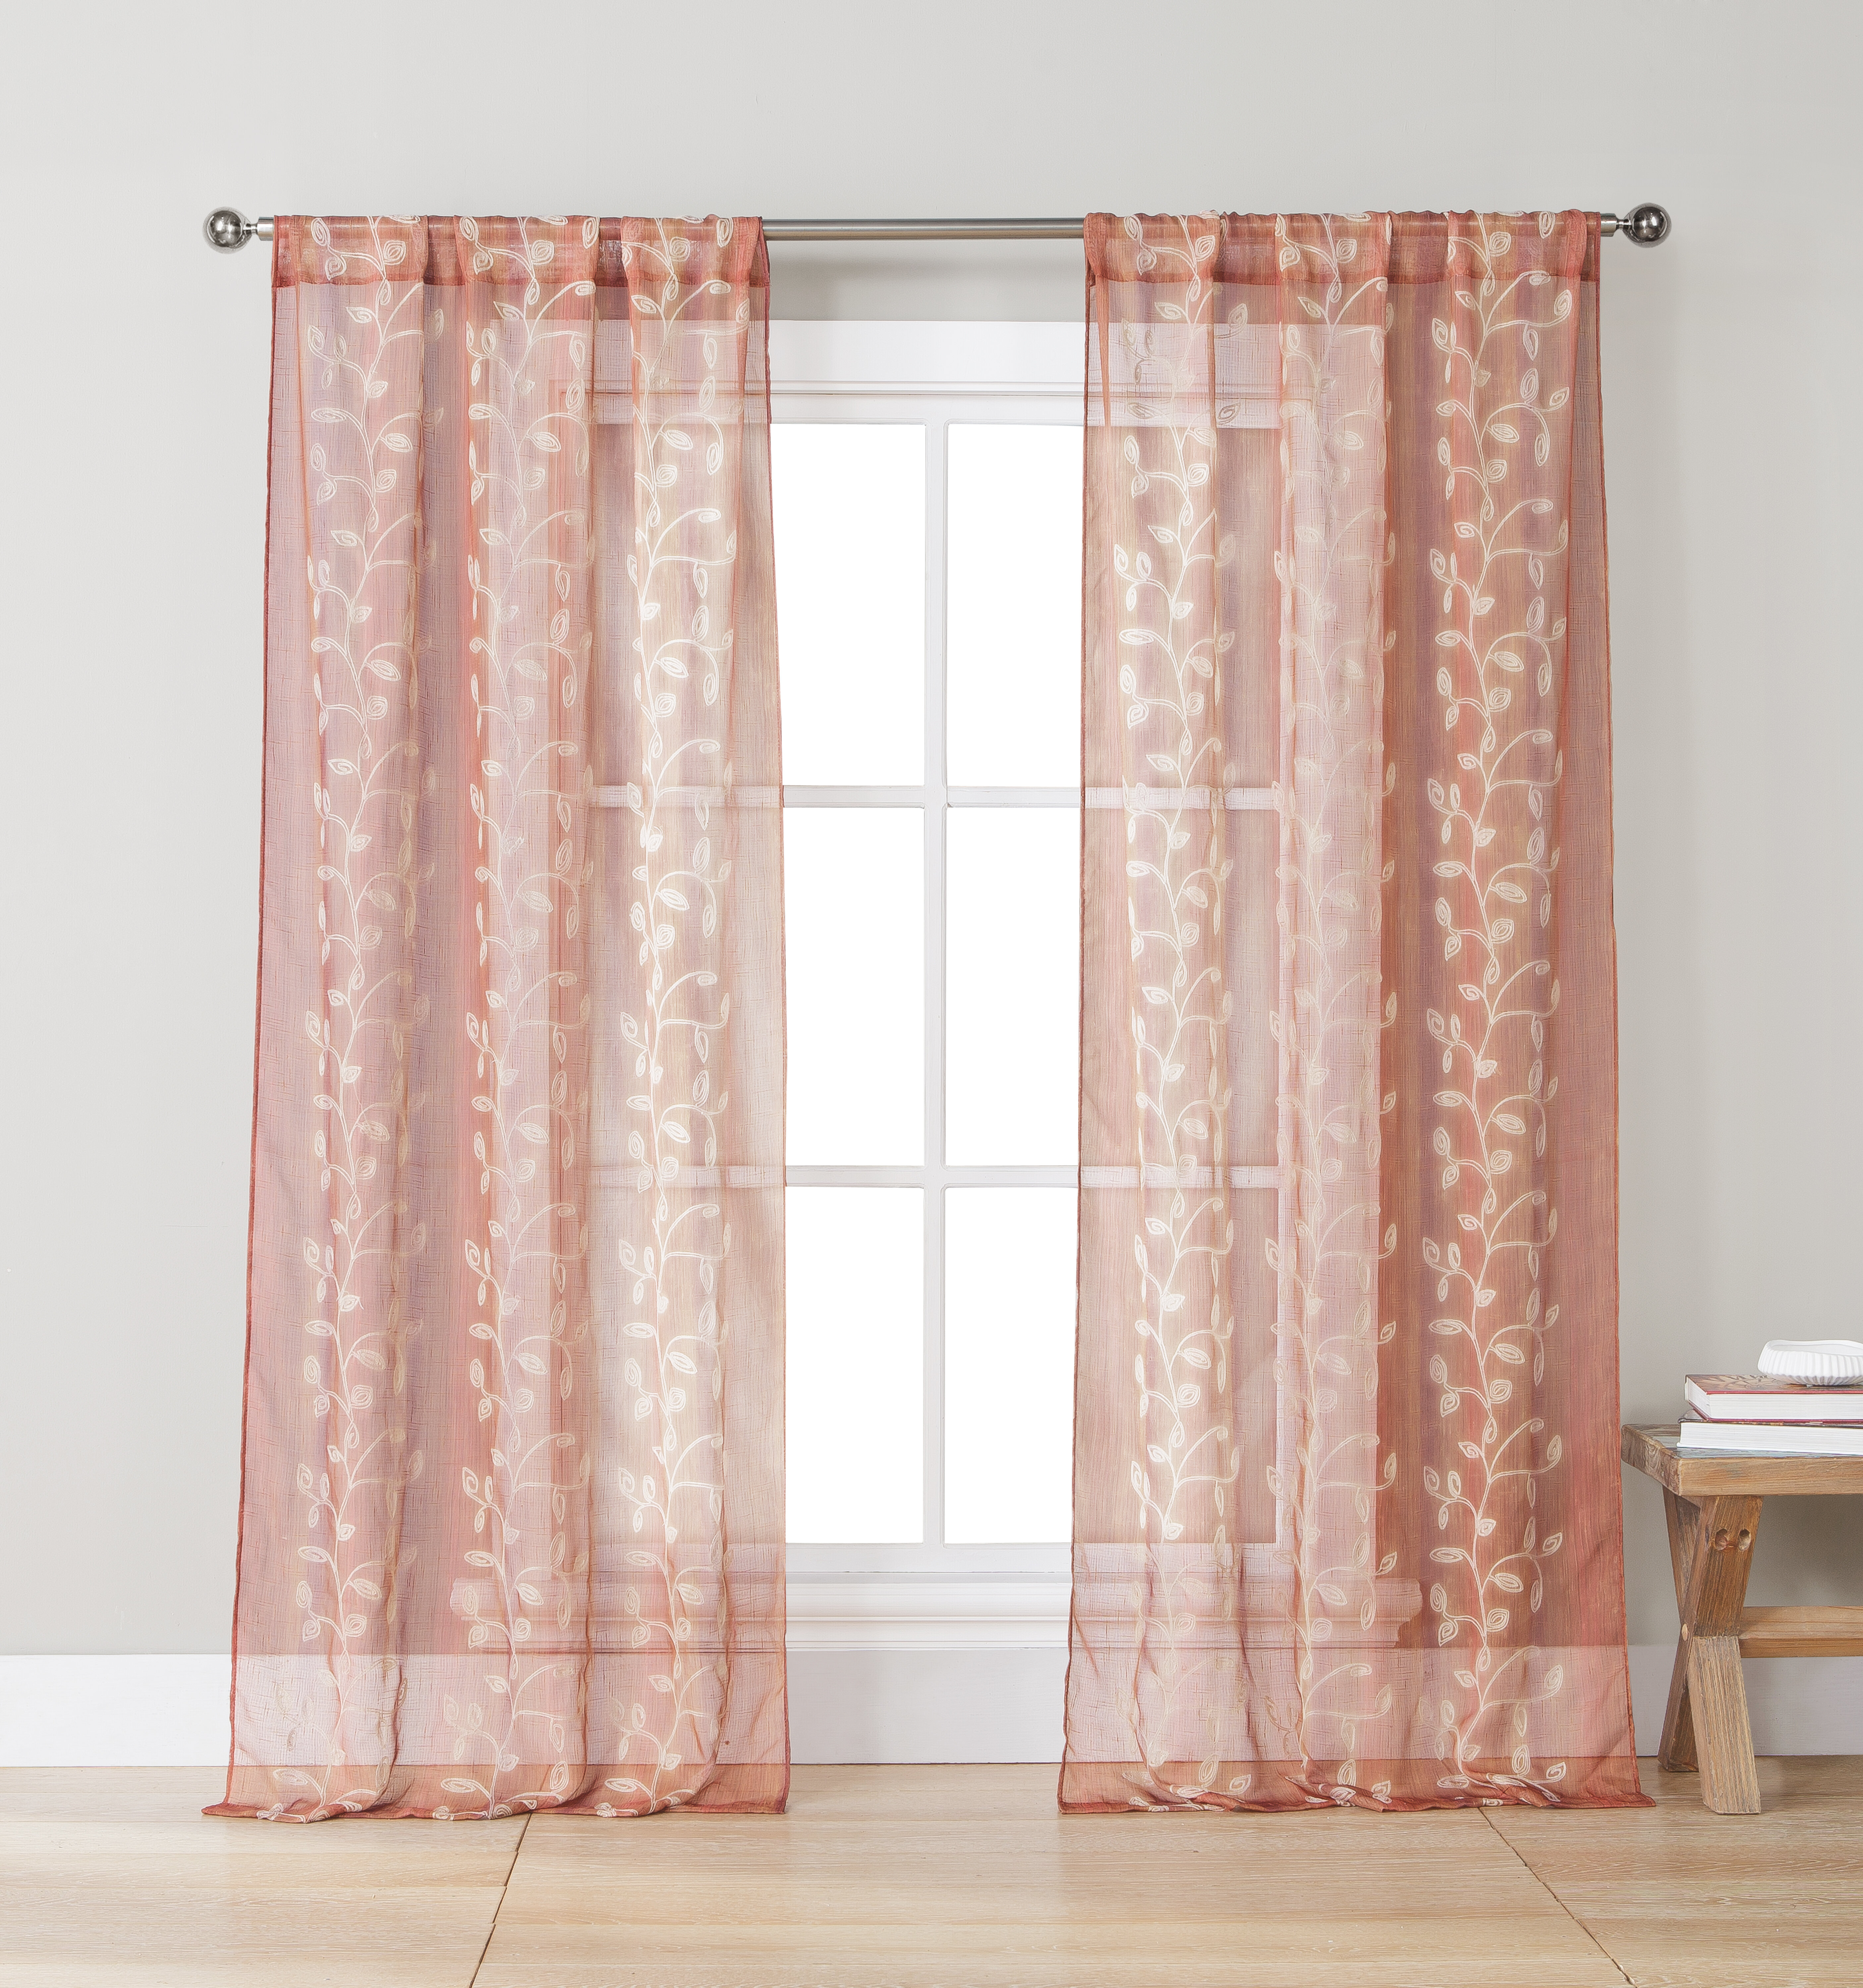 Red Barrel Studio Stenson Embroidered Jaquard Nature/floral Throughout Elegant Comfort Window Sheer Curtain Panel Pairs (Photo 16 of 20)